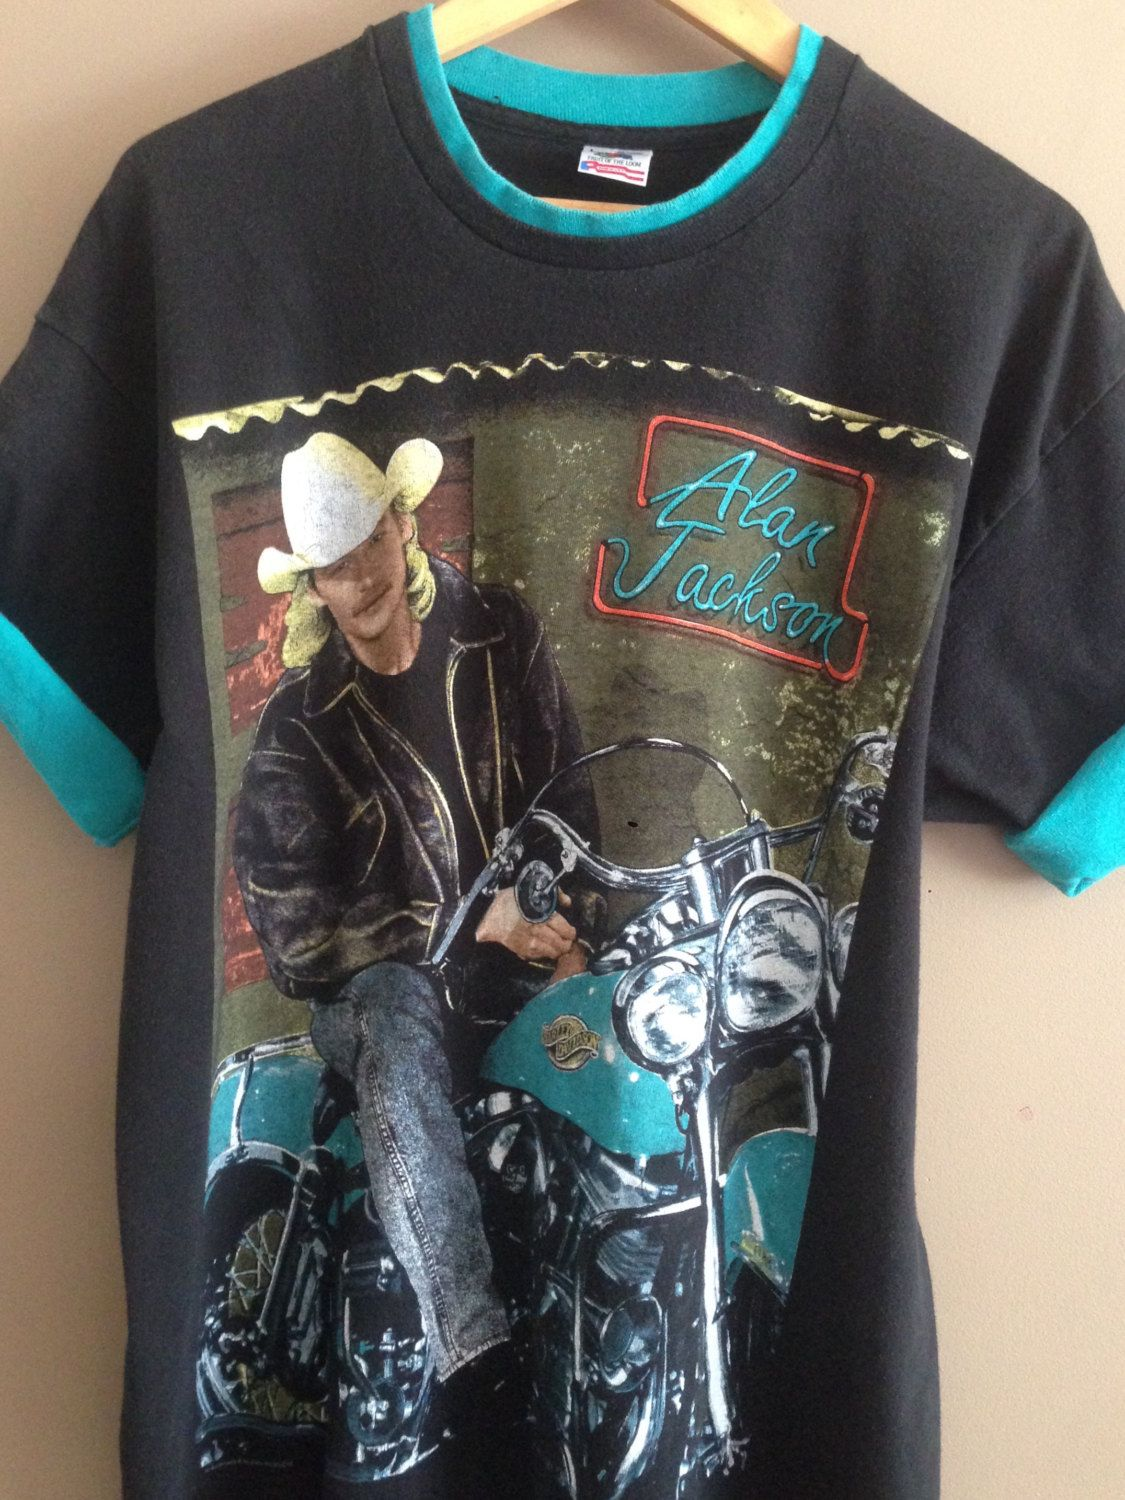 c3a993d999758f Alan Jackson T-shirt   Motorbike Shirt  Vintage Band Tee  Country Music   Alan Jackson  90s tee  90s tour shirt  Music Festival  Western Tee by  PioneerThrift ...